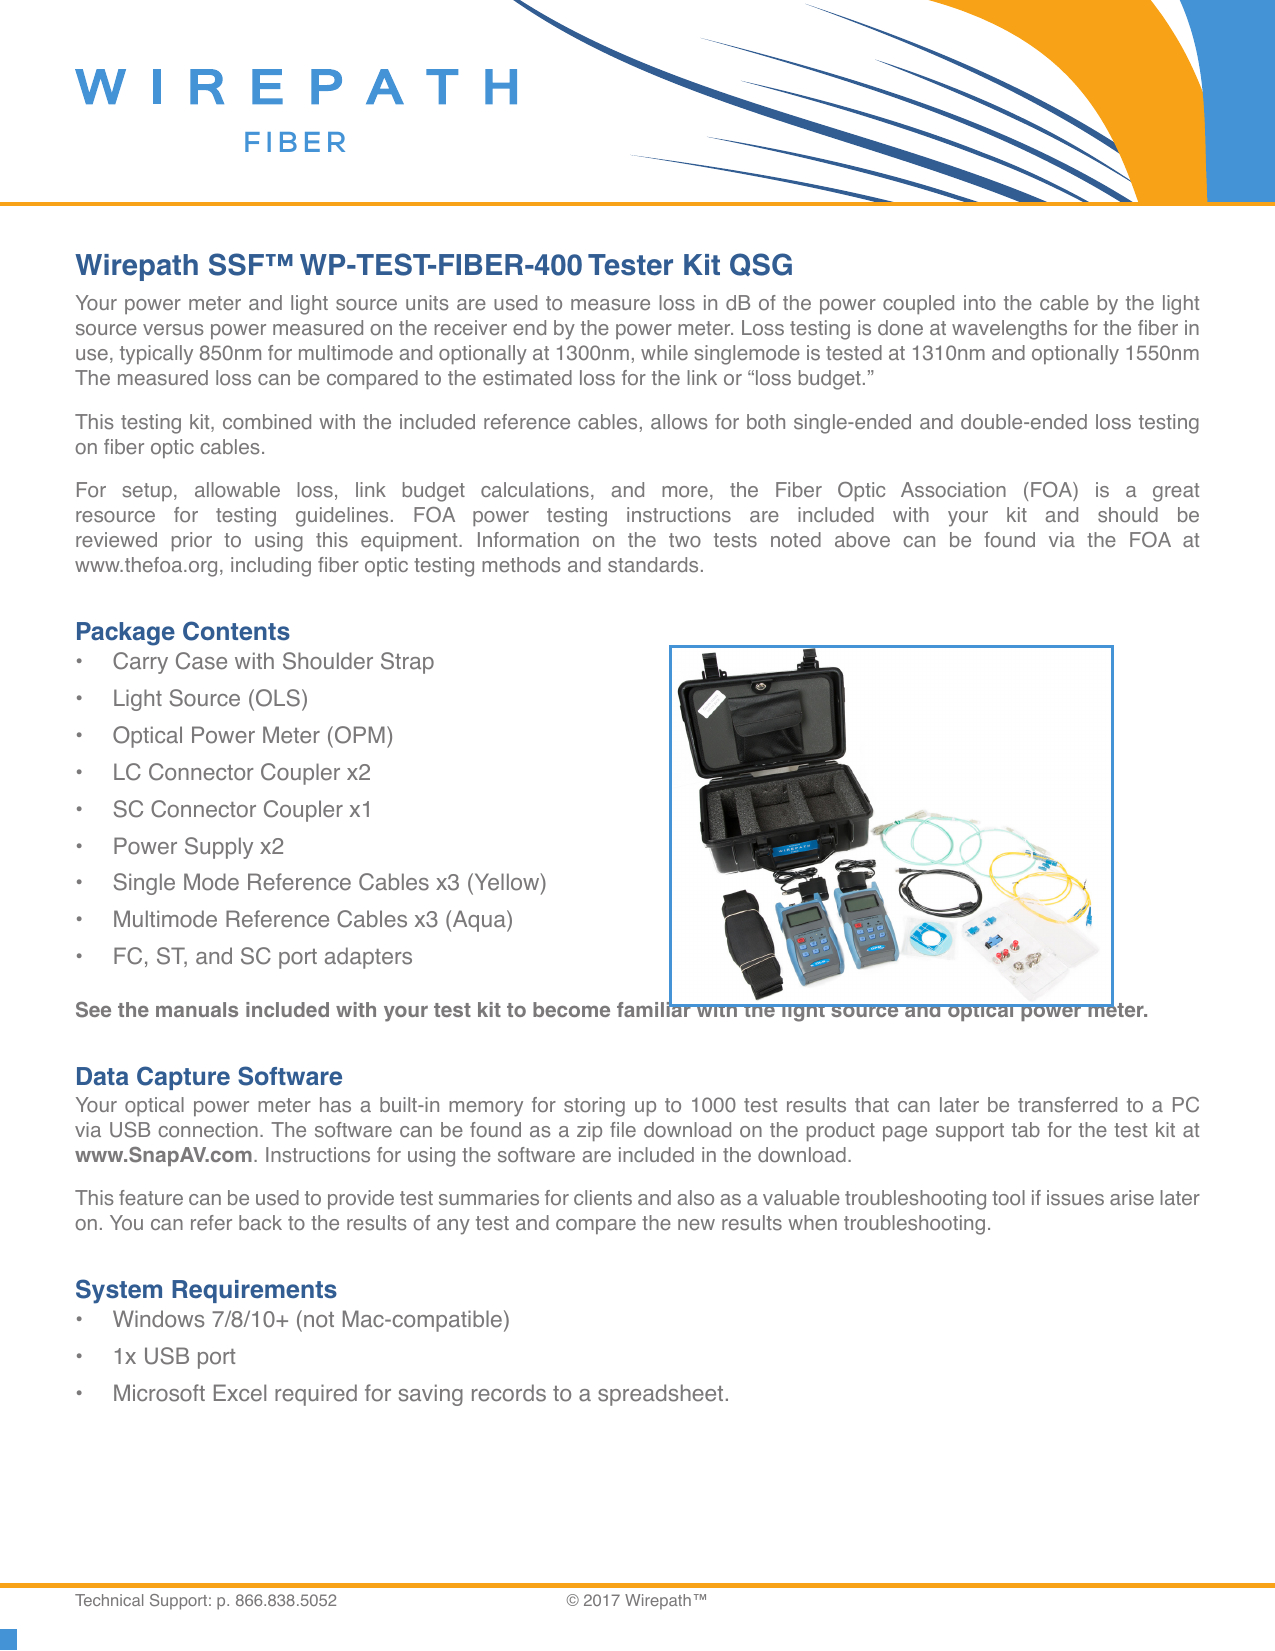 Fiber Optic Spreadsheet Intended For Wirepath Ssf™ Wptestfiber400 Tester Kit Qsg  Manualzz